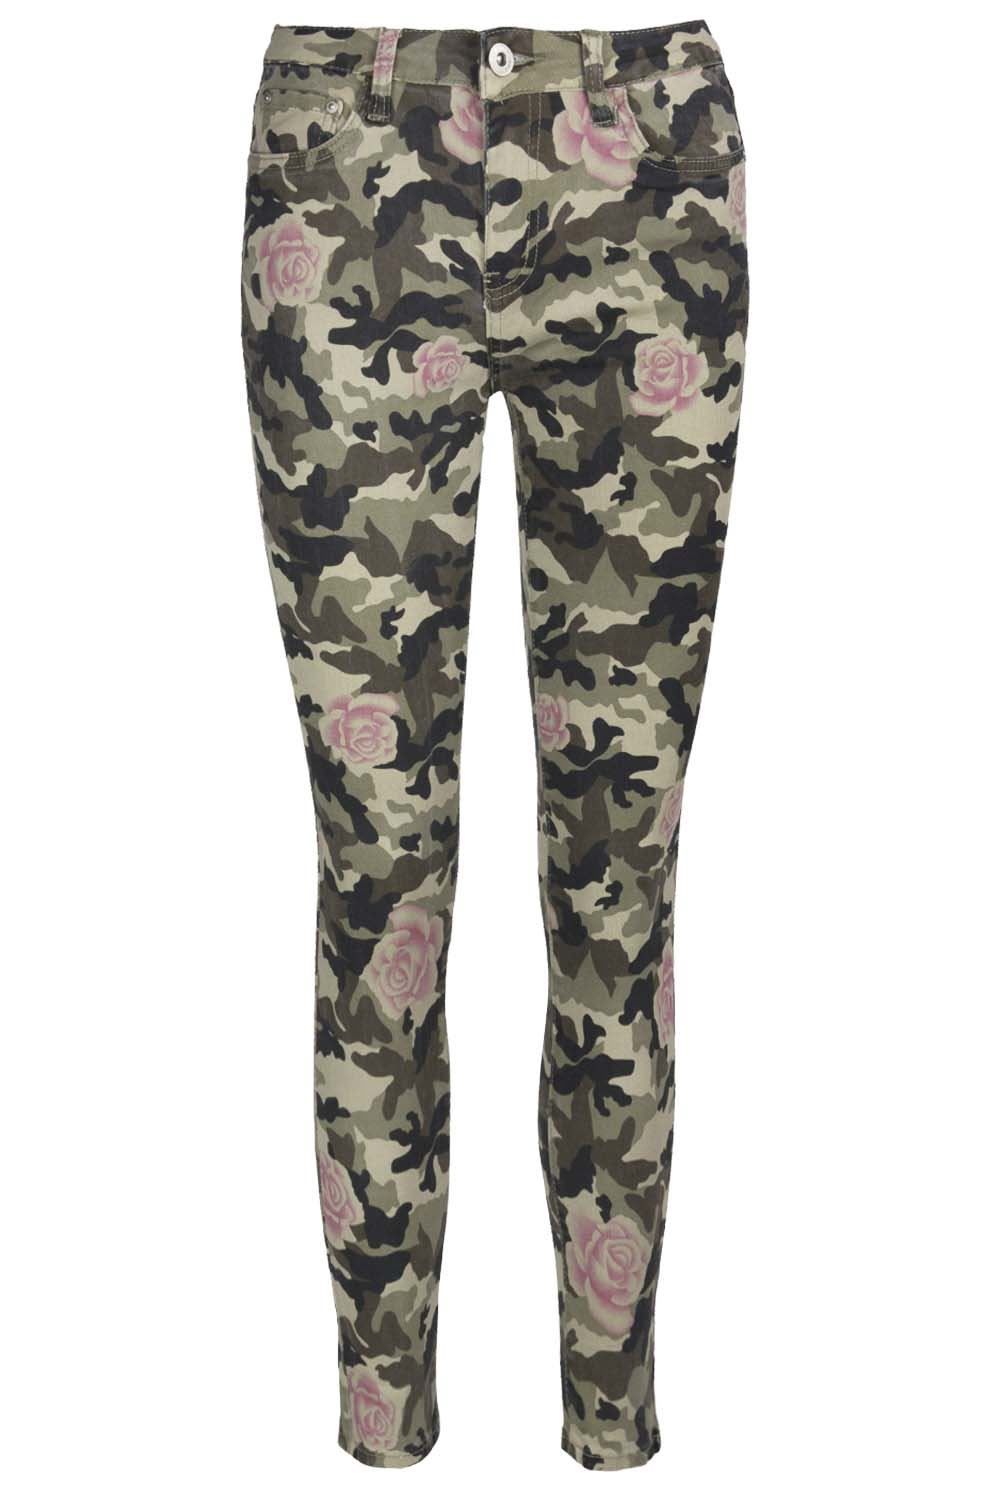 Womens Camouflage Army Rose Printed Jeans Trouser Skinny ...